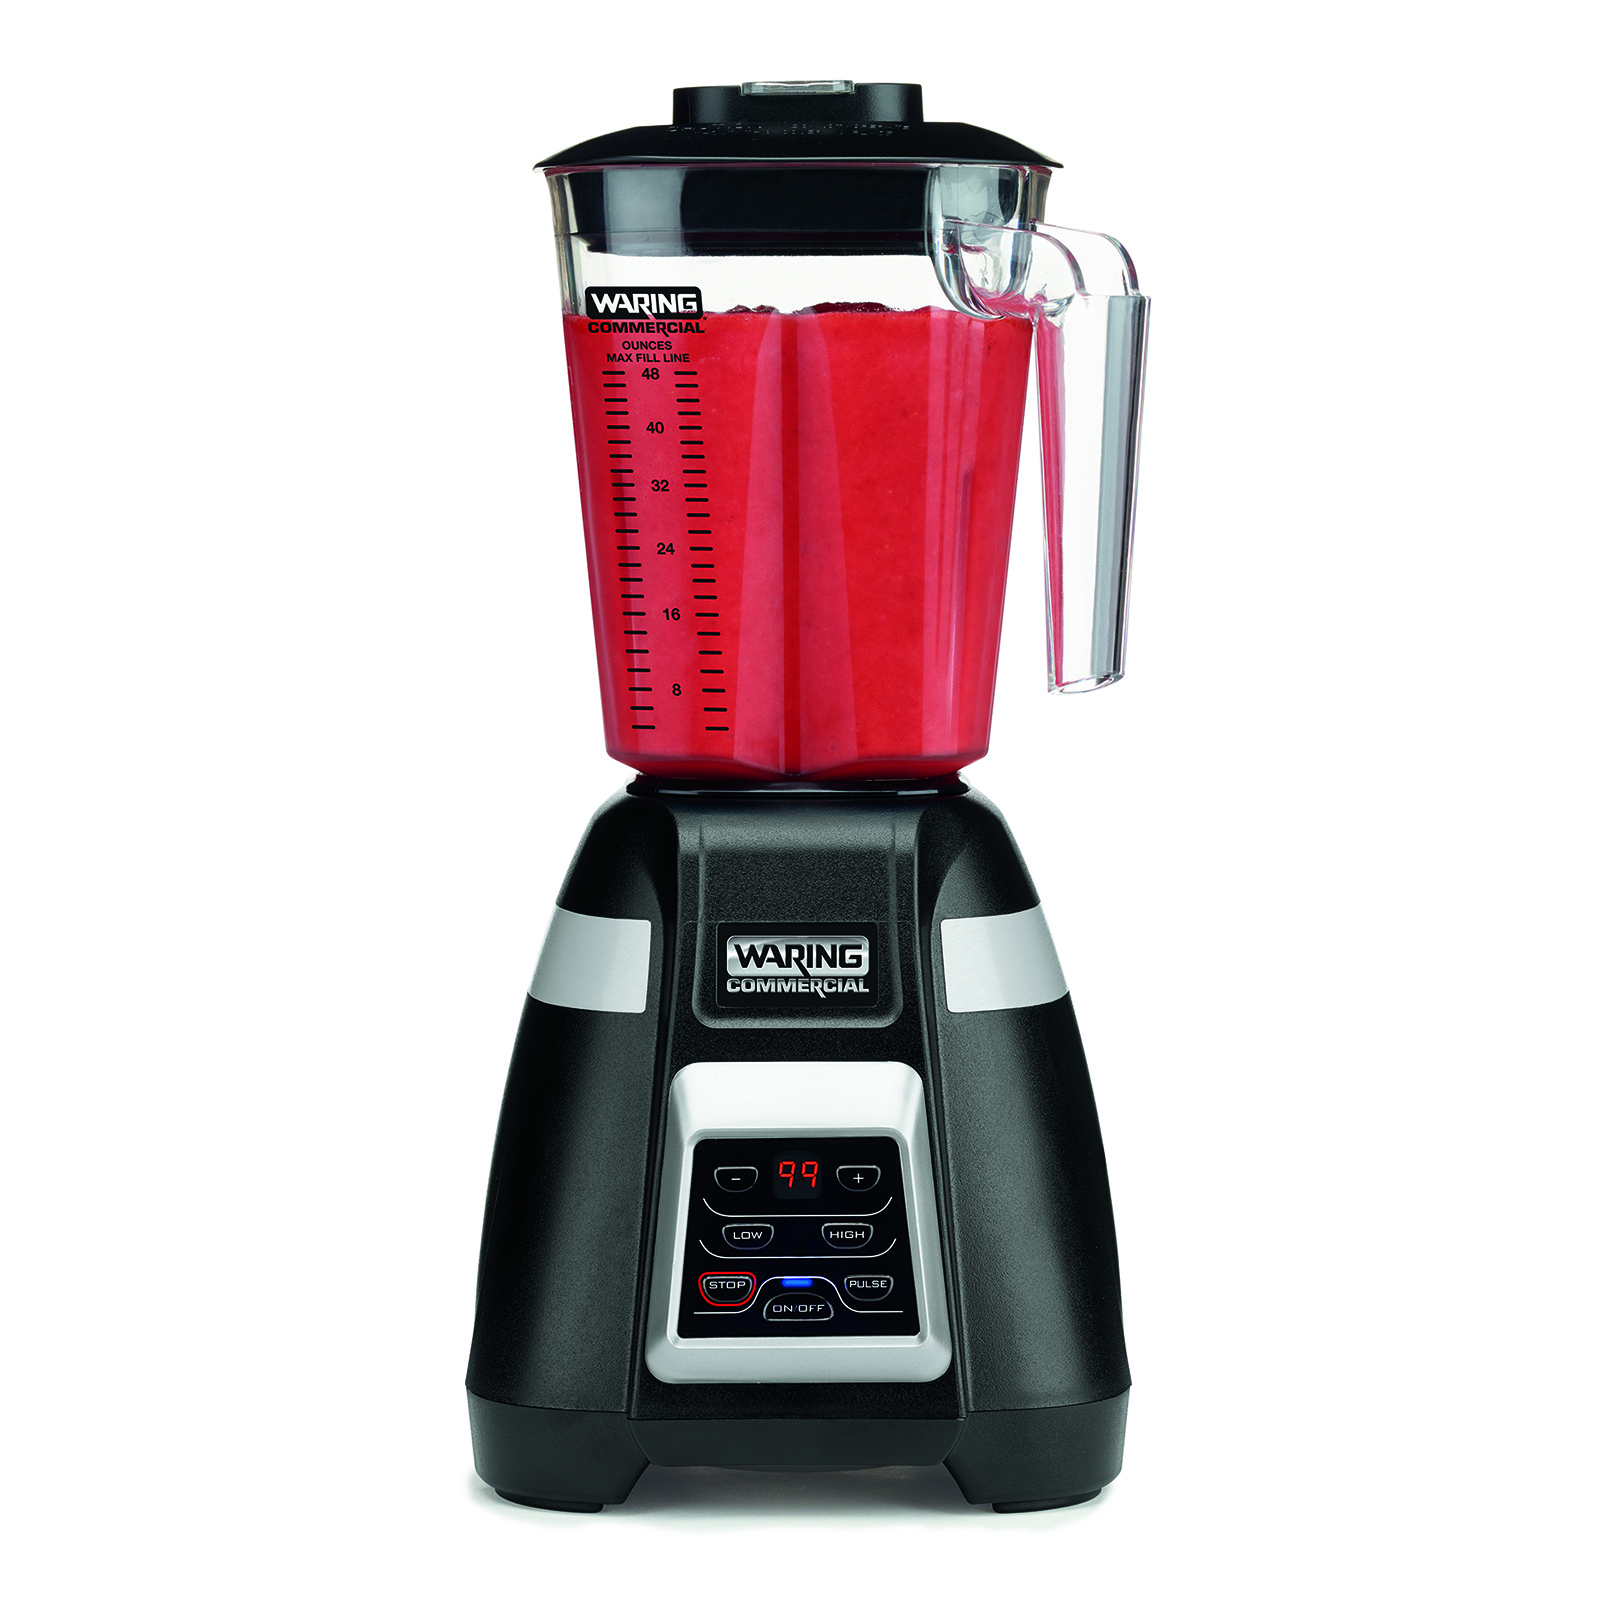 Waring BB340 blender, bar